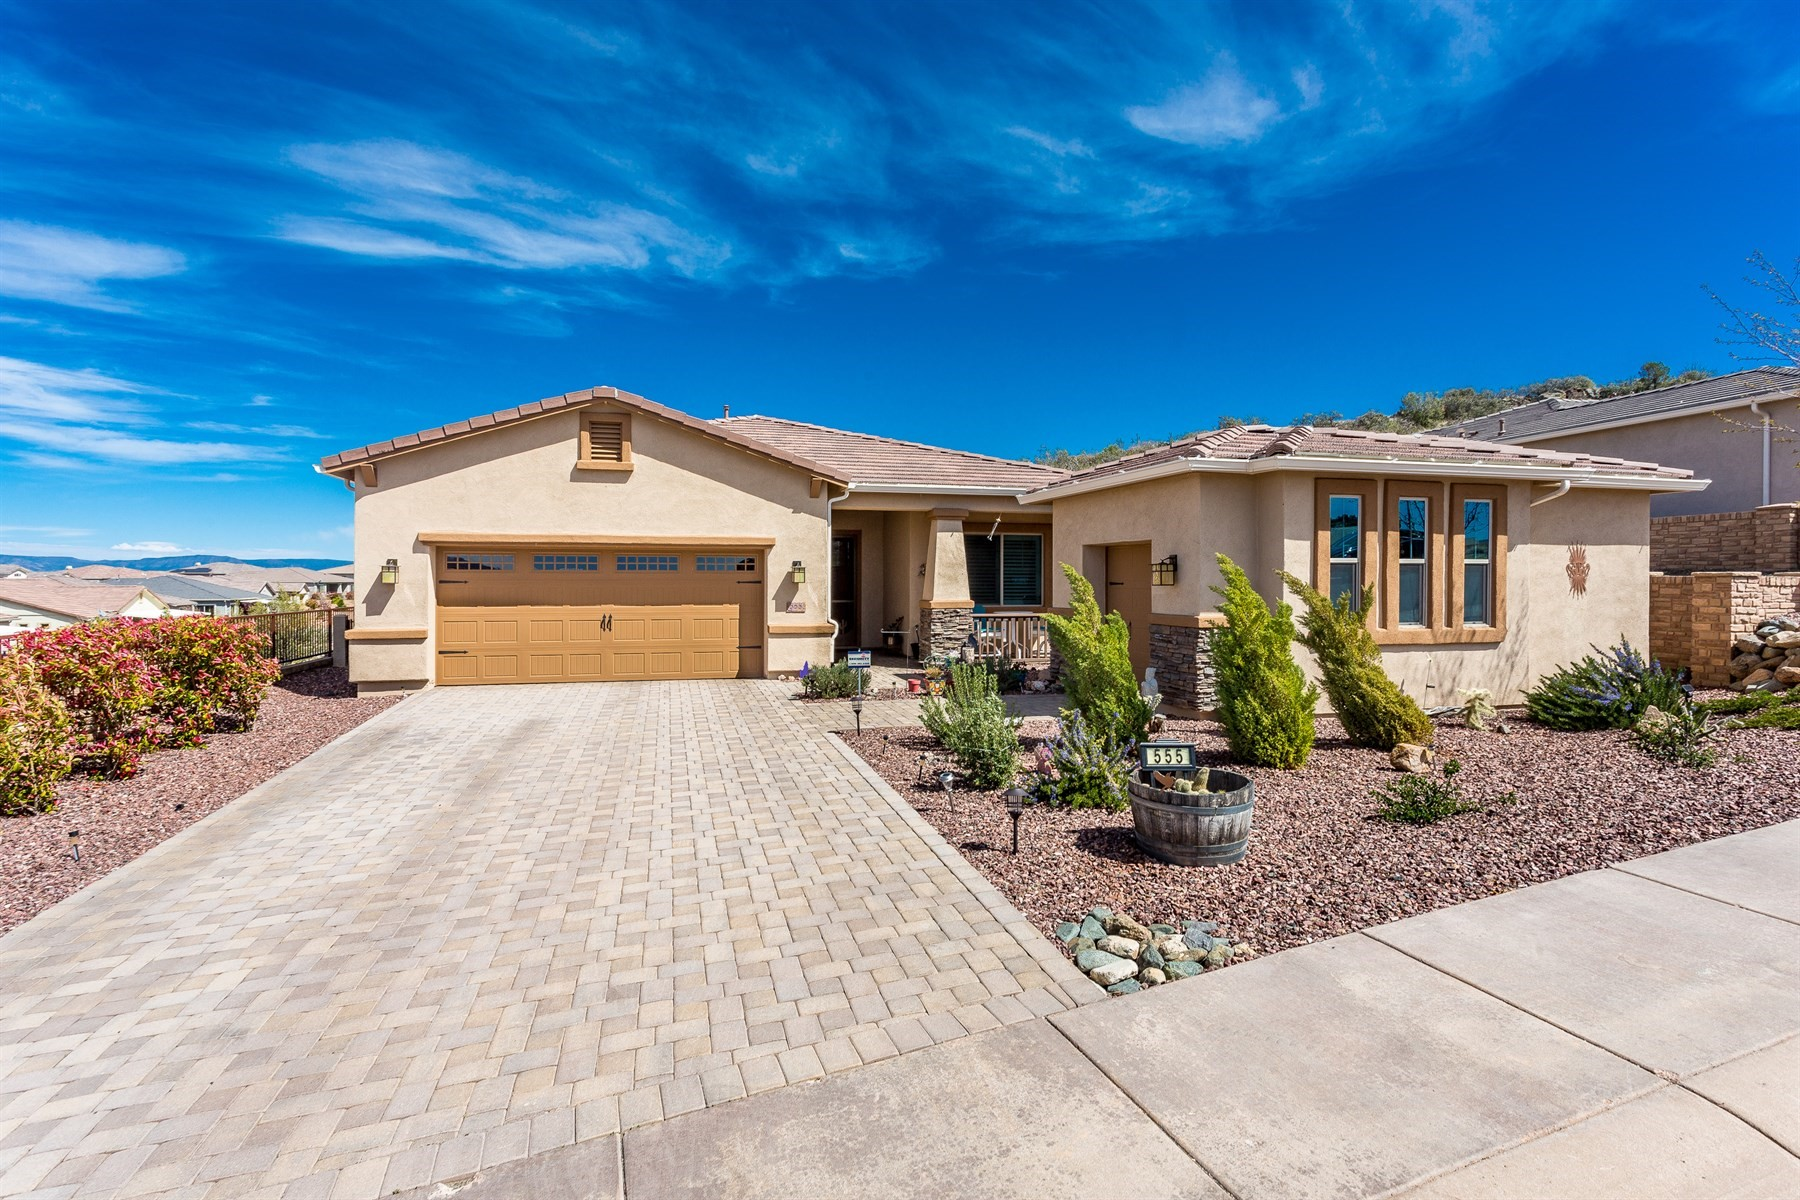 واحد منزل الأسرة للـ Sale في Beautiful single story Prescott home 555 Tawny Drive Prescott, Arizona, 86301 United States